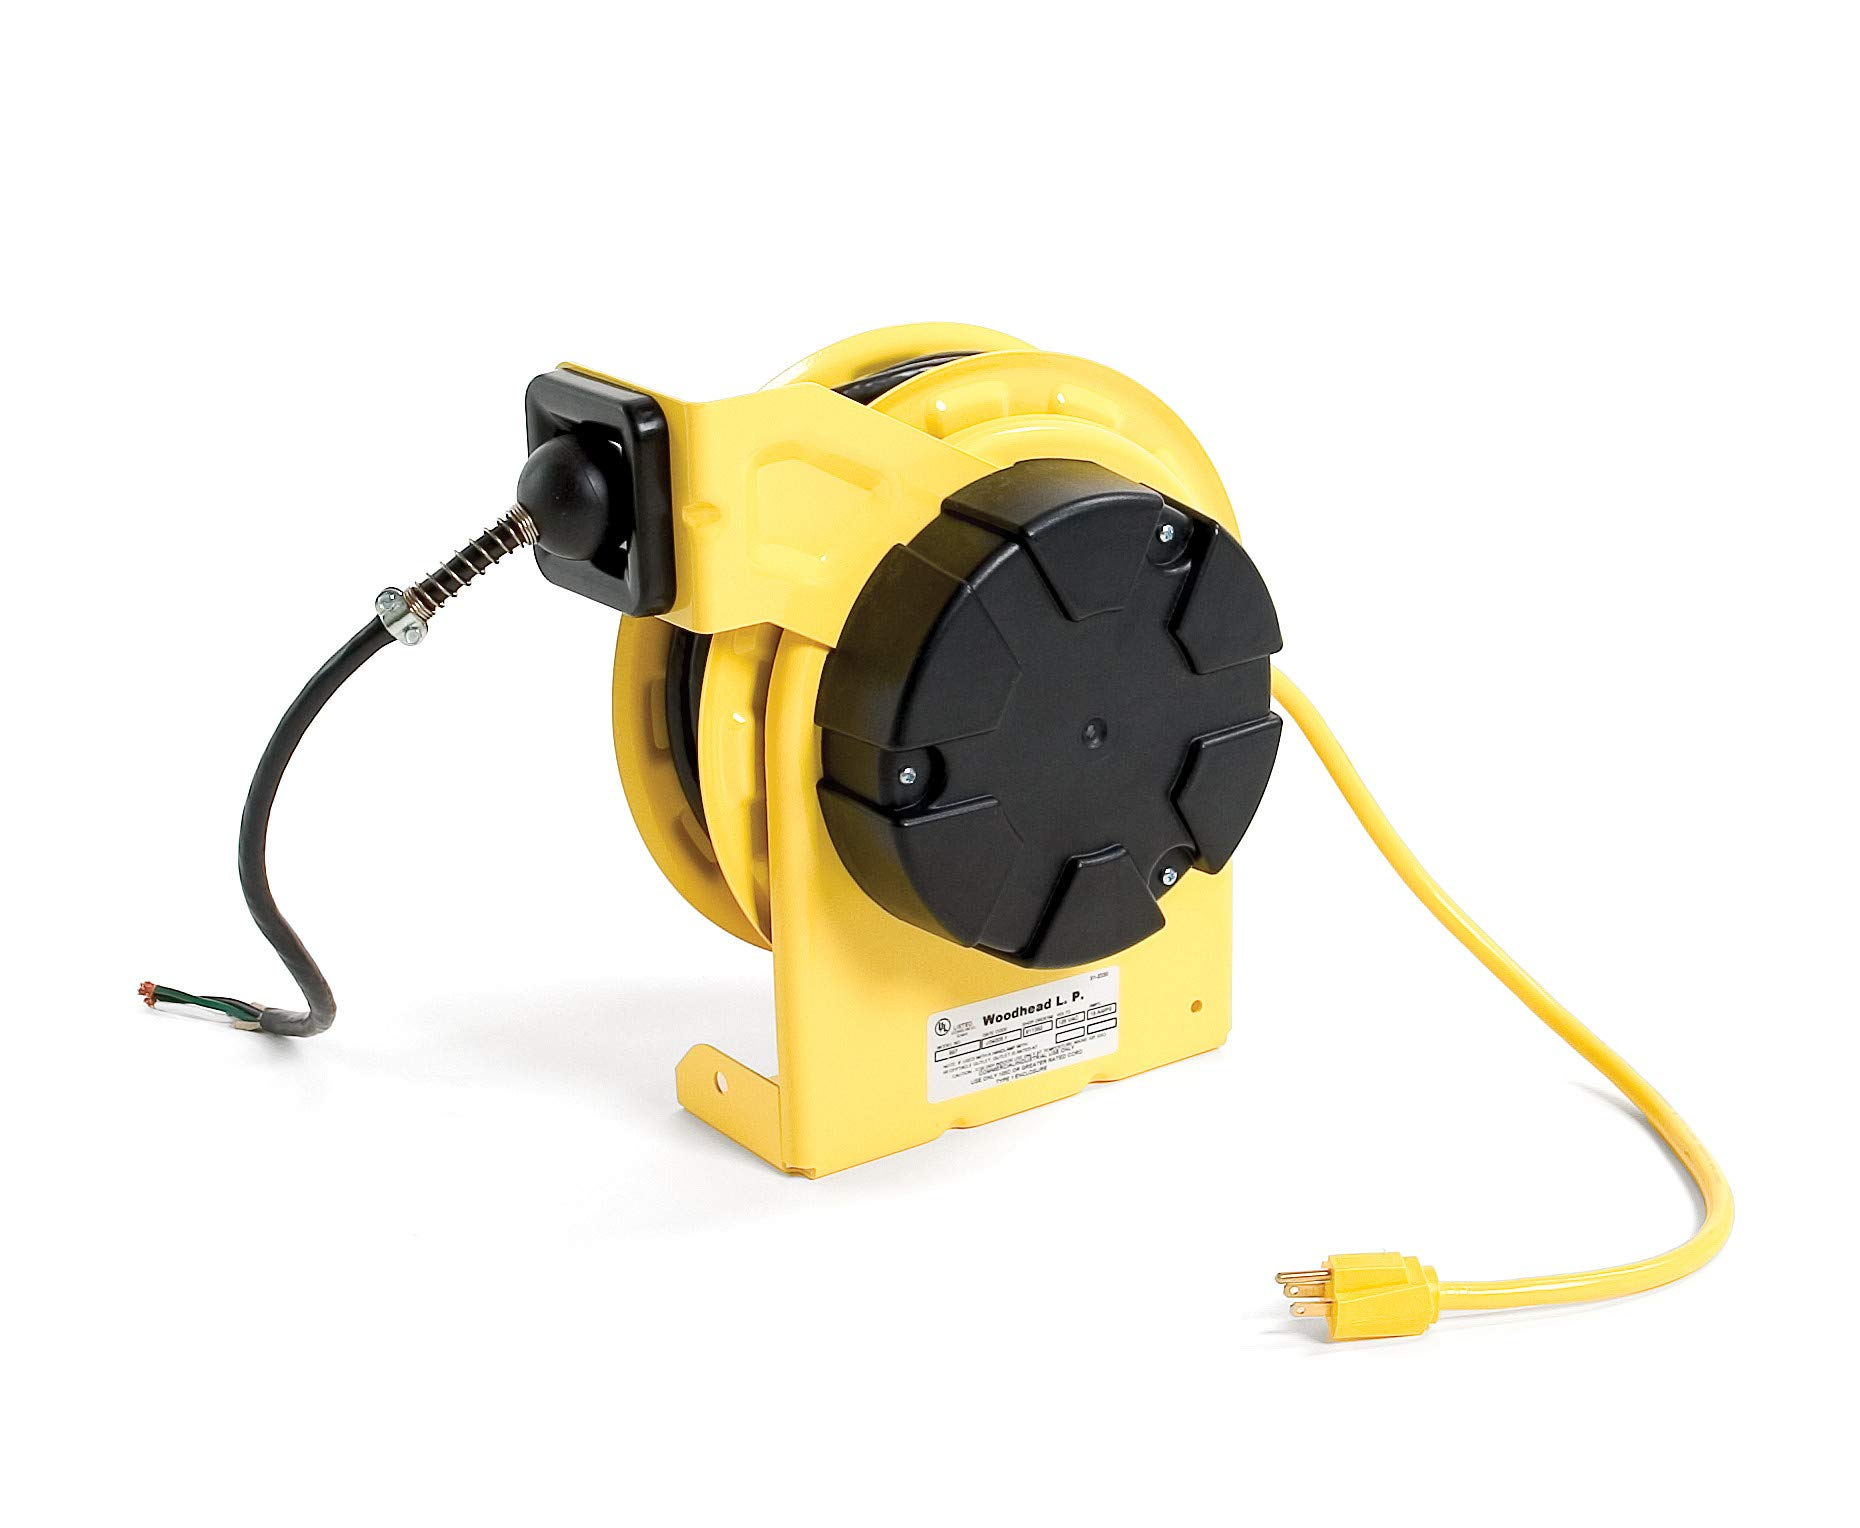 Woodhead 997-3070G Cable Reel with GFCI Pendant Outlet Box - NEMA 1 Cord Drum Reel with 12/3 SJTOW, 35ft. Cord, 2 Outlets